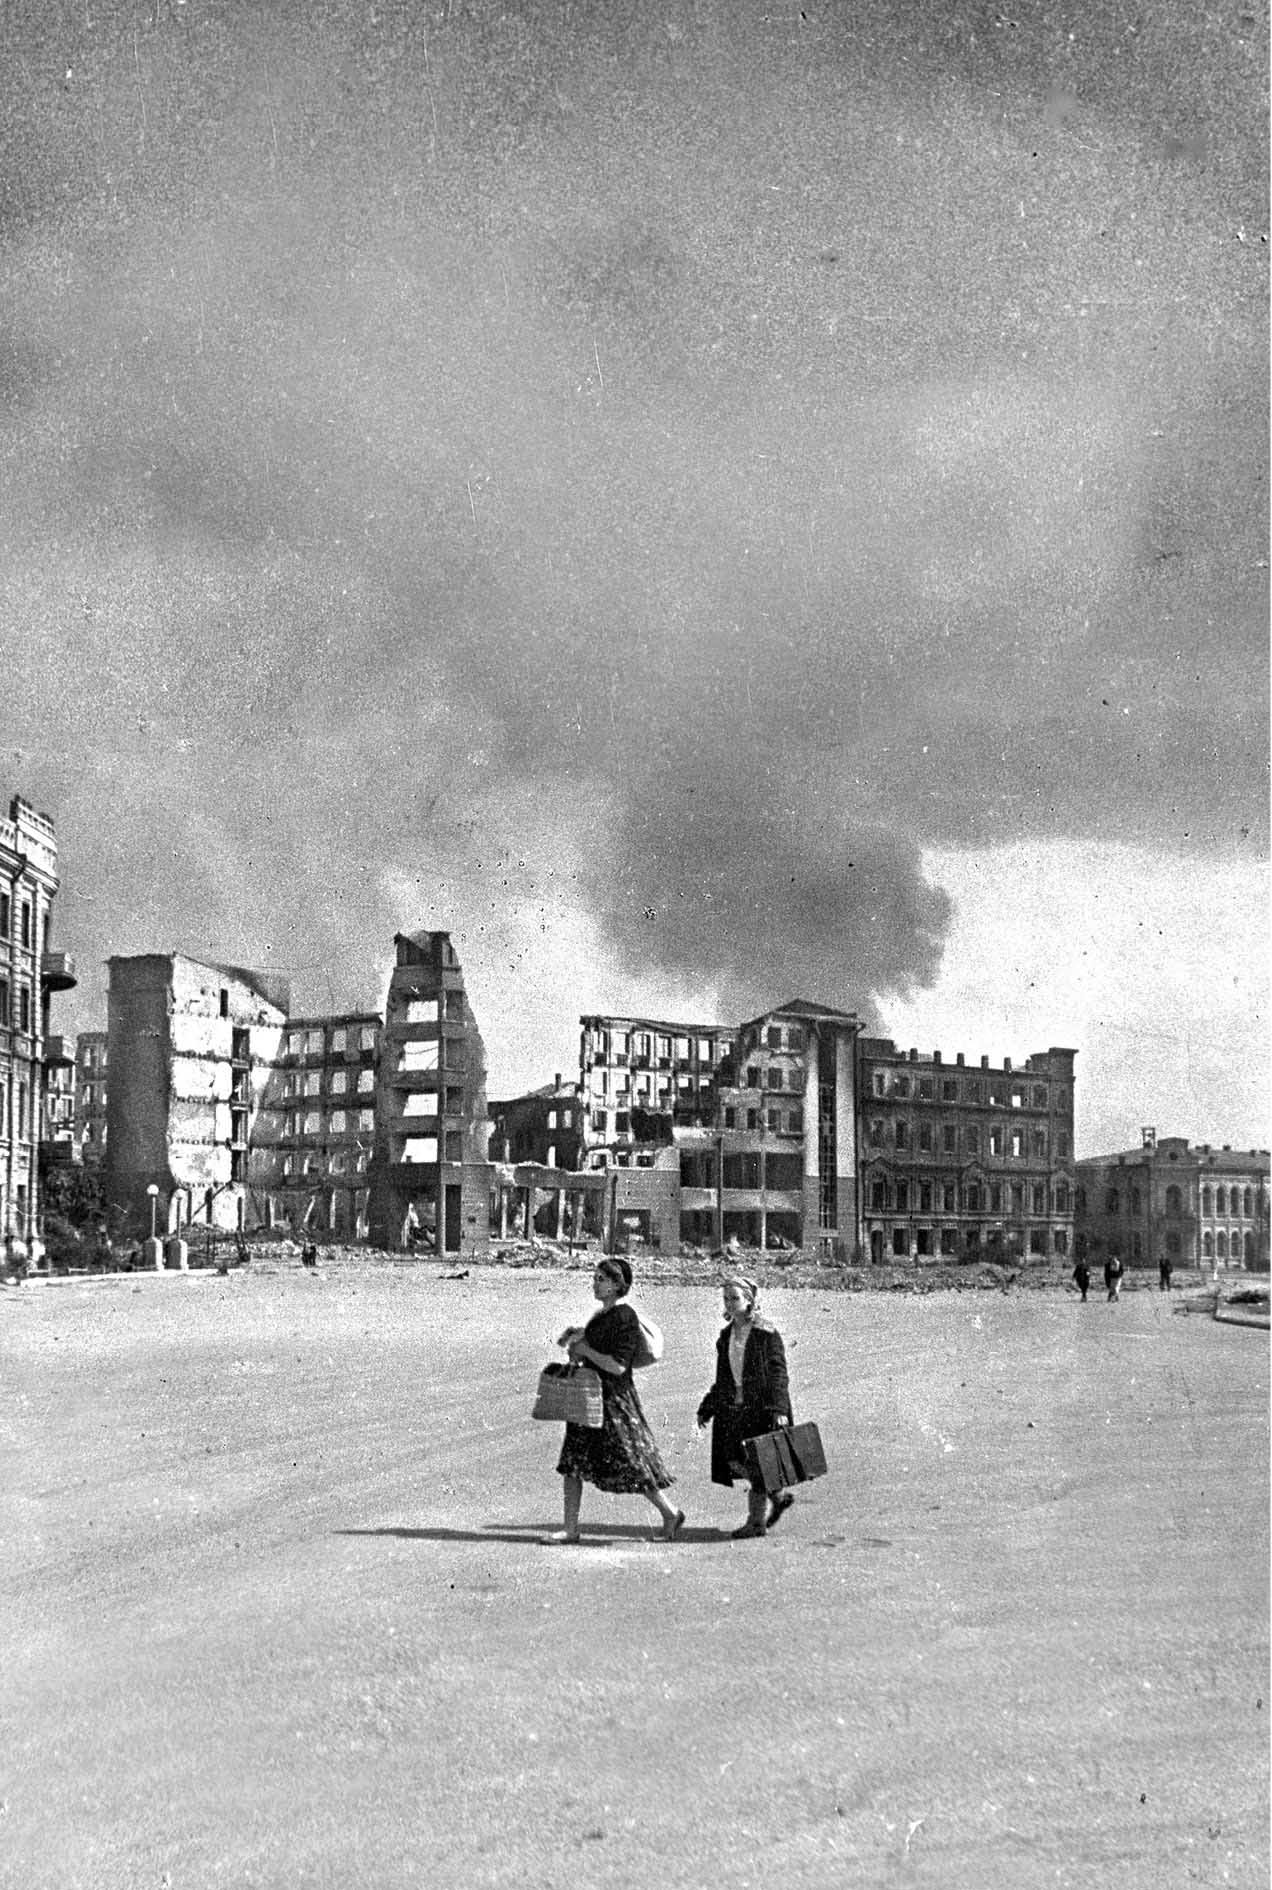 Stalingrad during the siege.